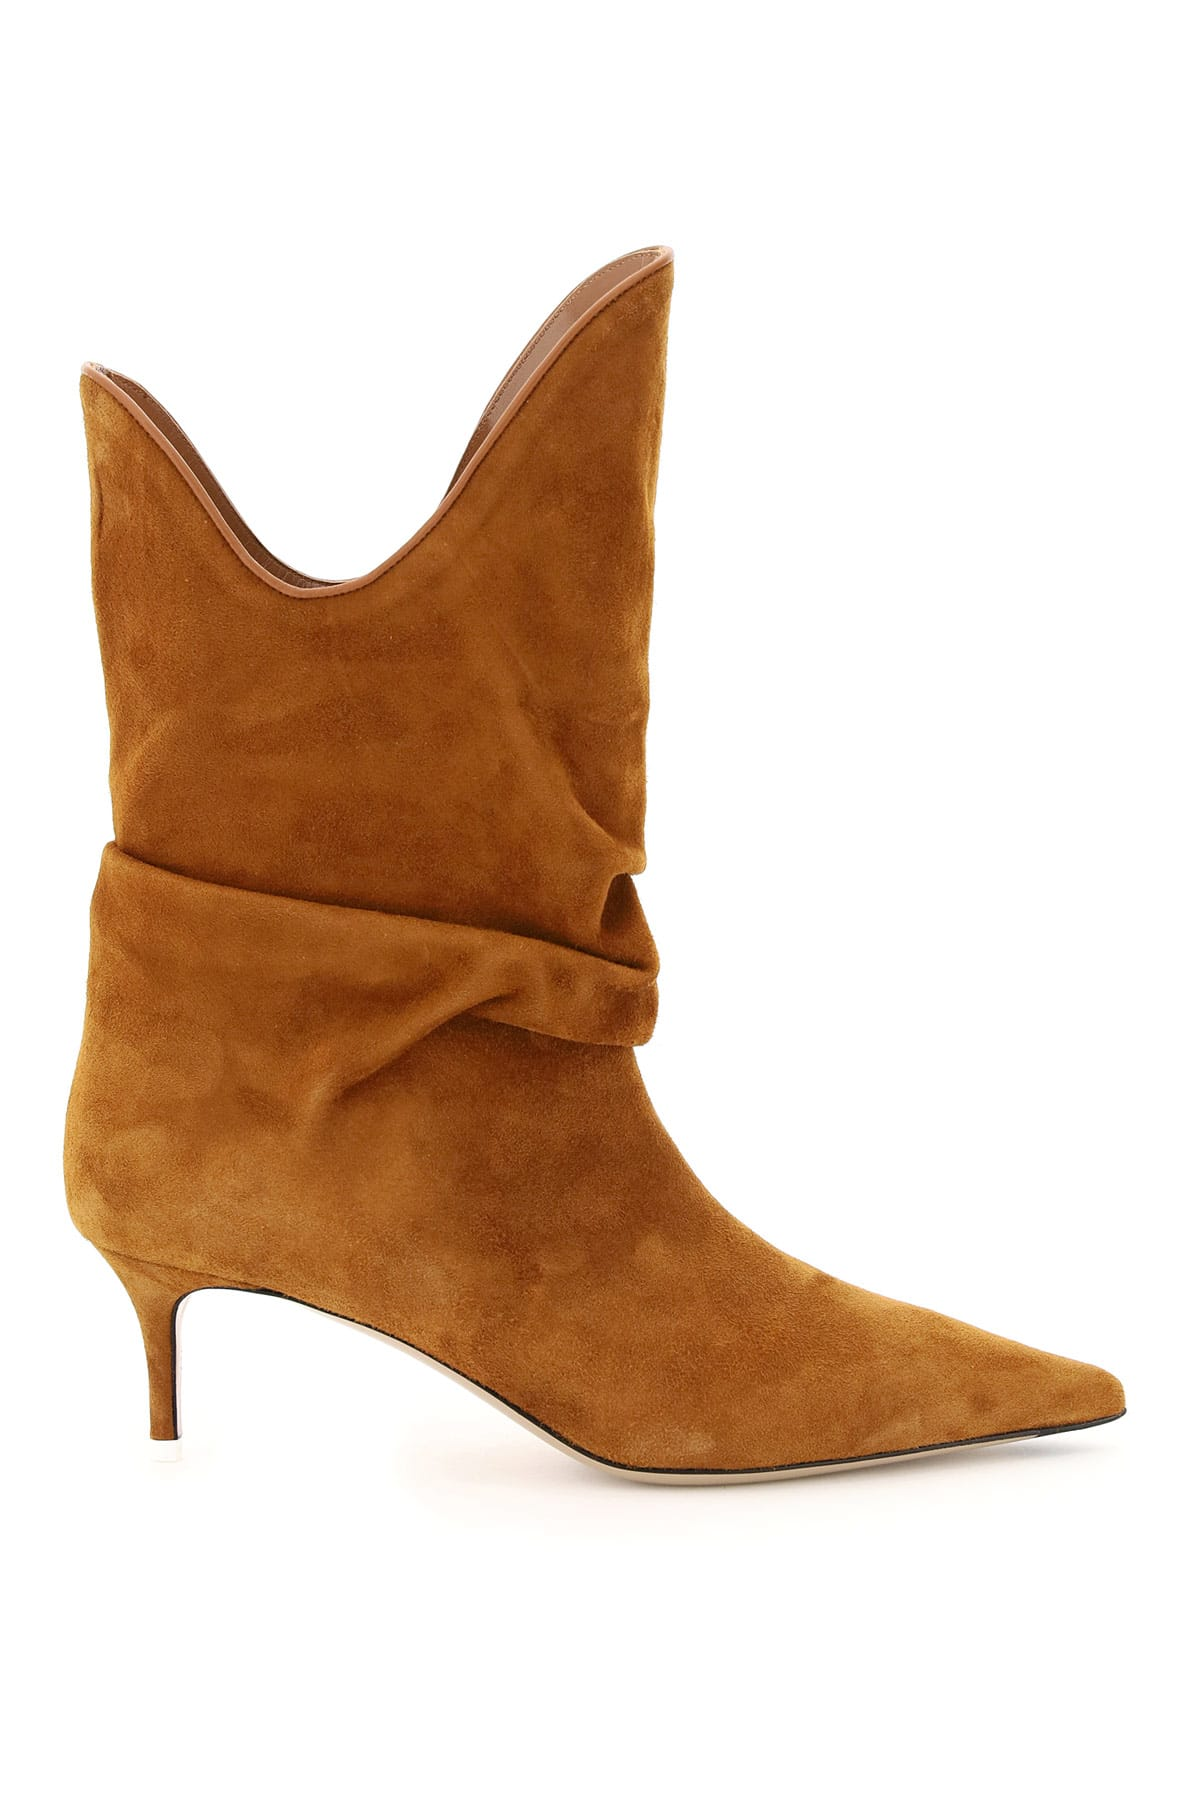 Attico SUEDE ANKLE BOOTS